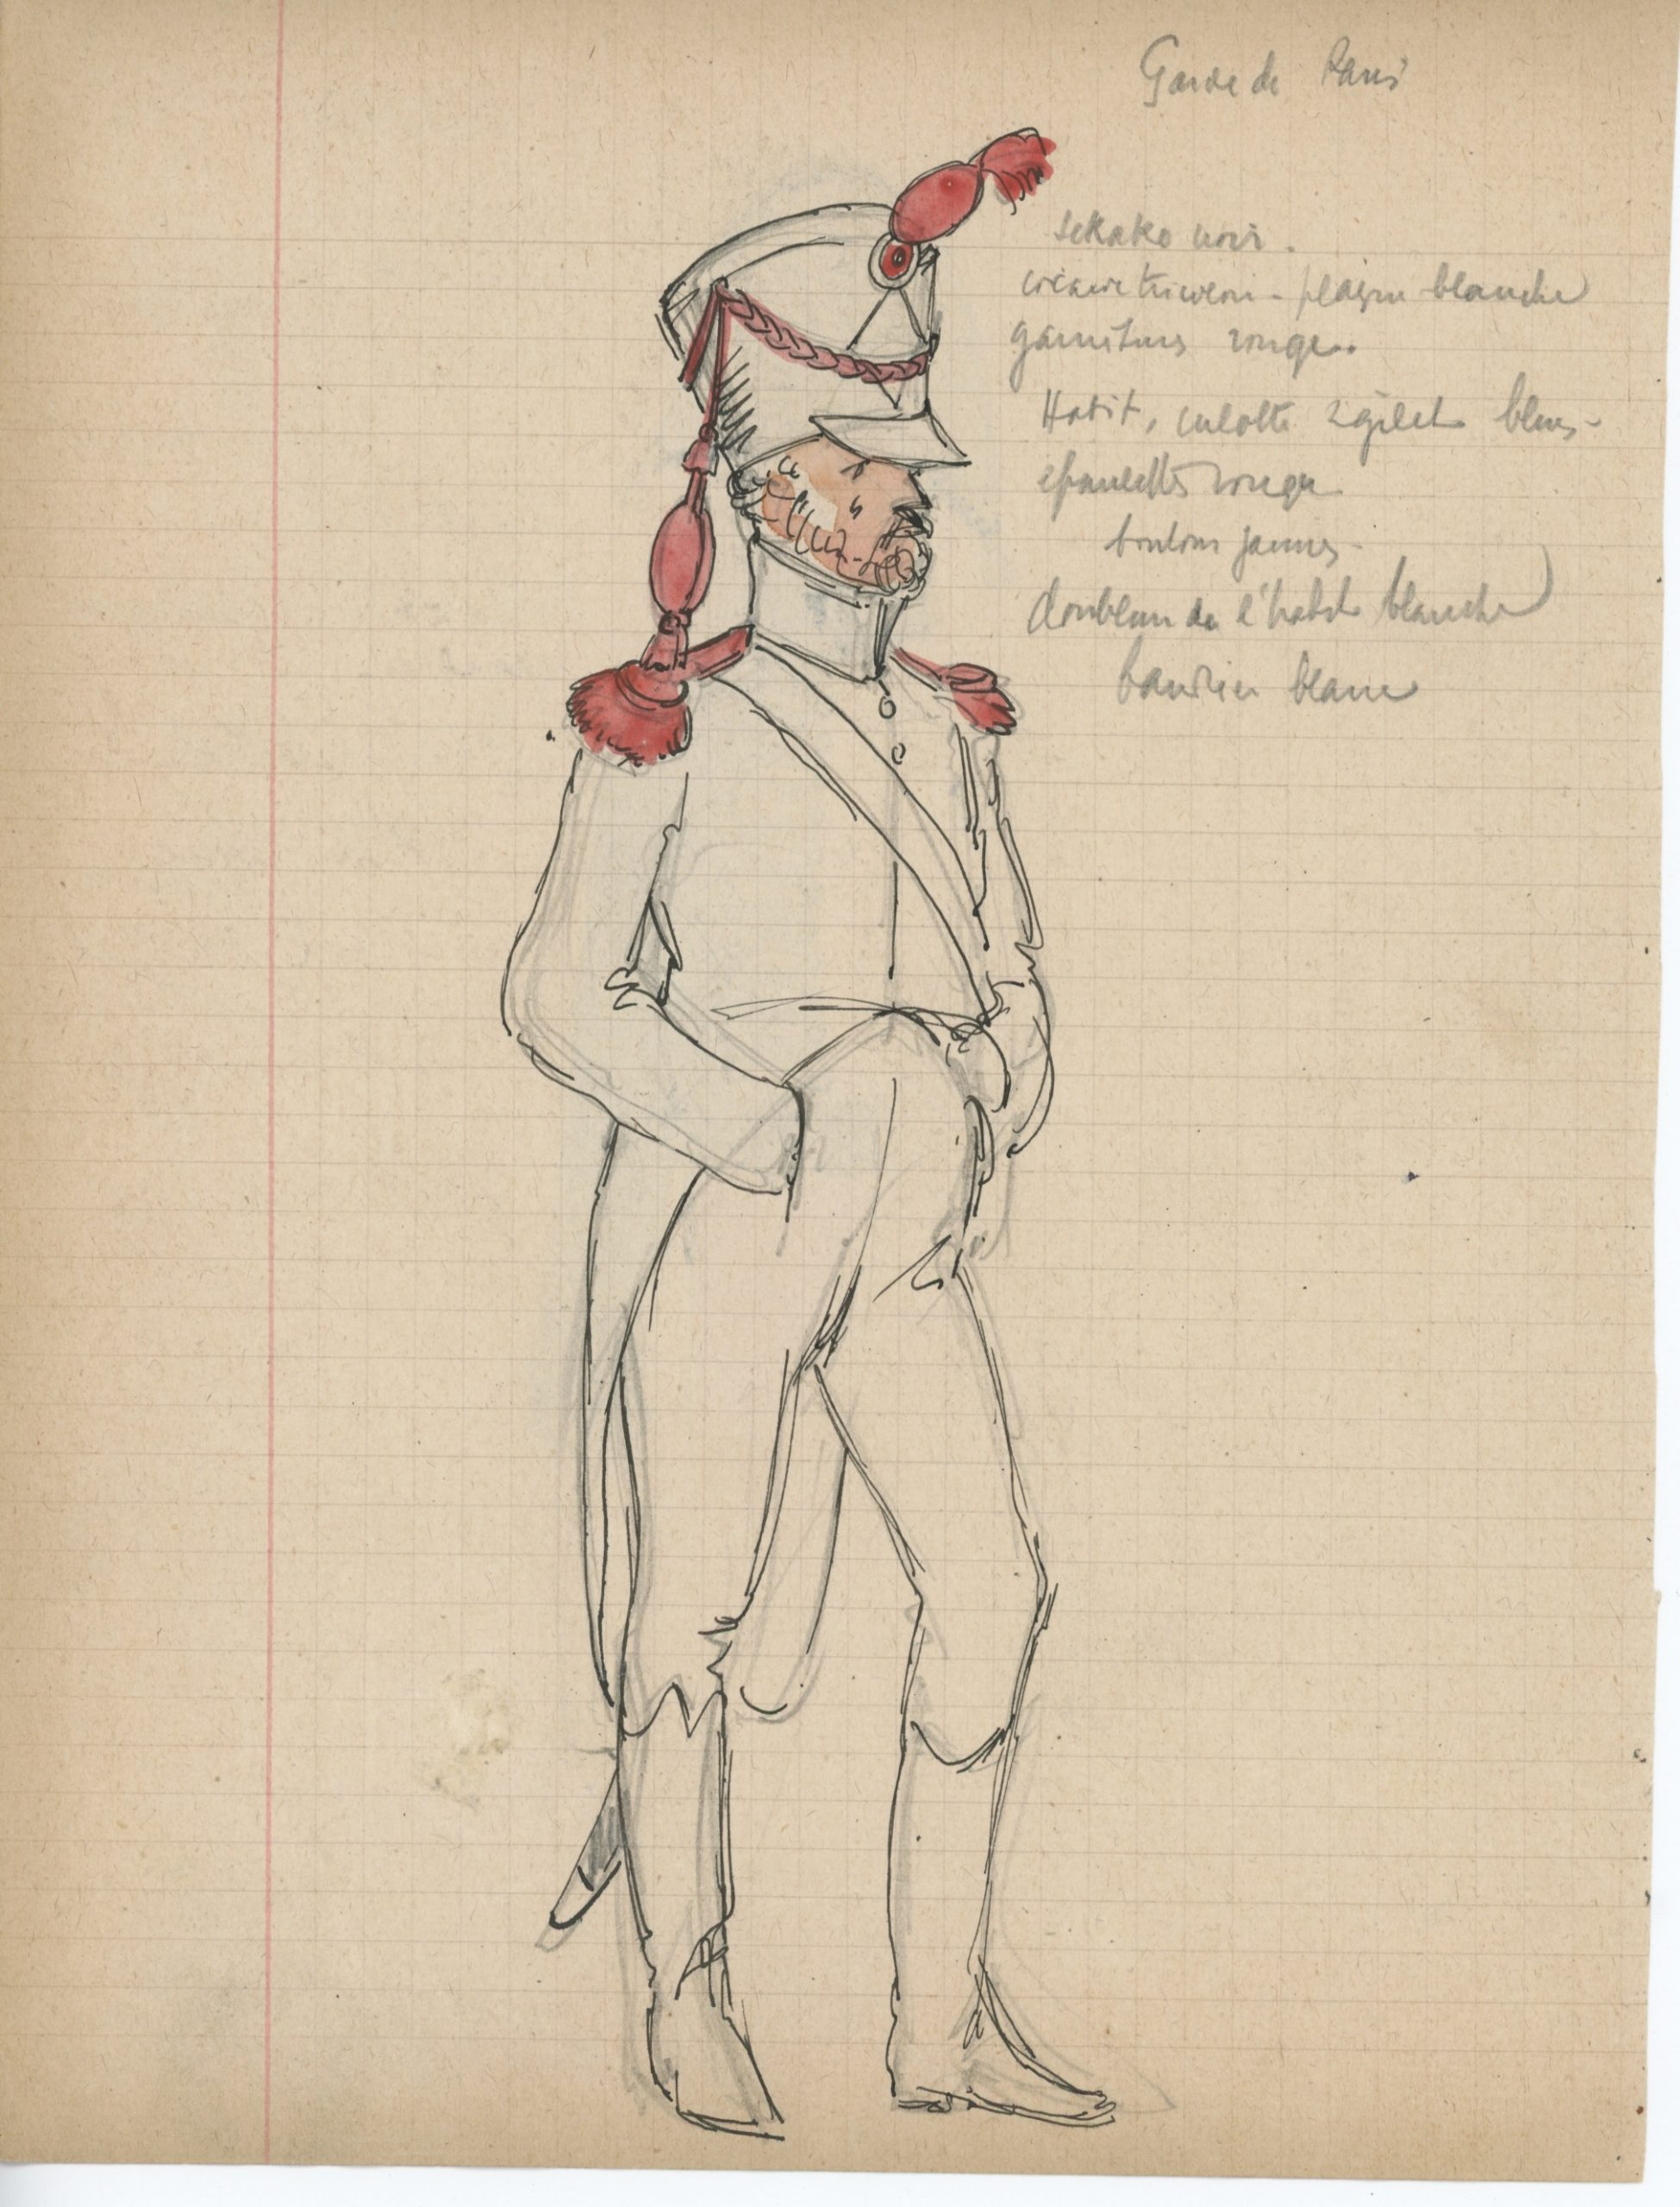 Lot de 33 pages de carnet illustrées - Dessin crayon - uniforme - soldat - 1er Empire - Napoleon 1er - Espagne - Hollande - France